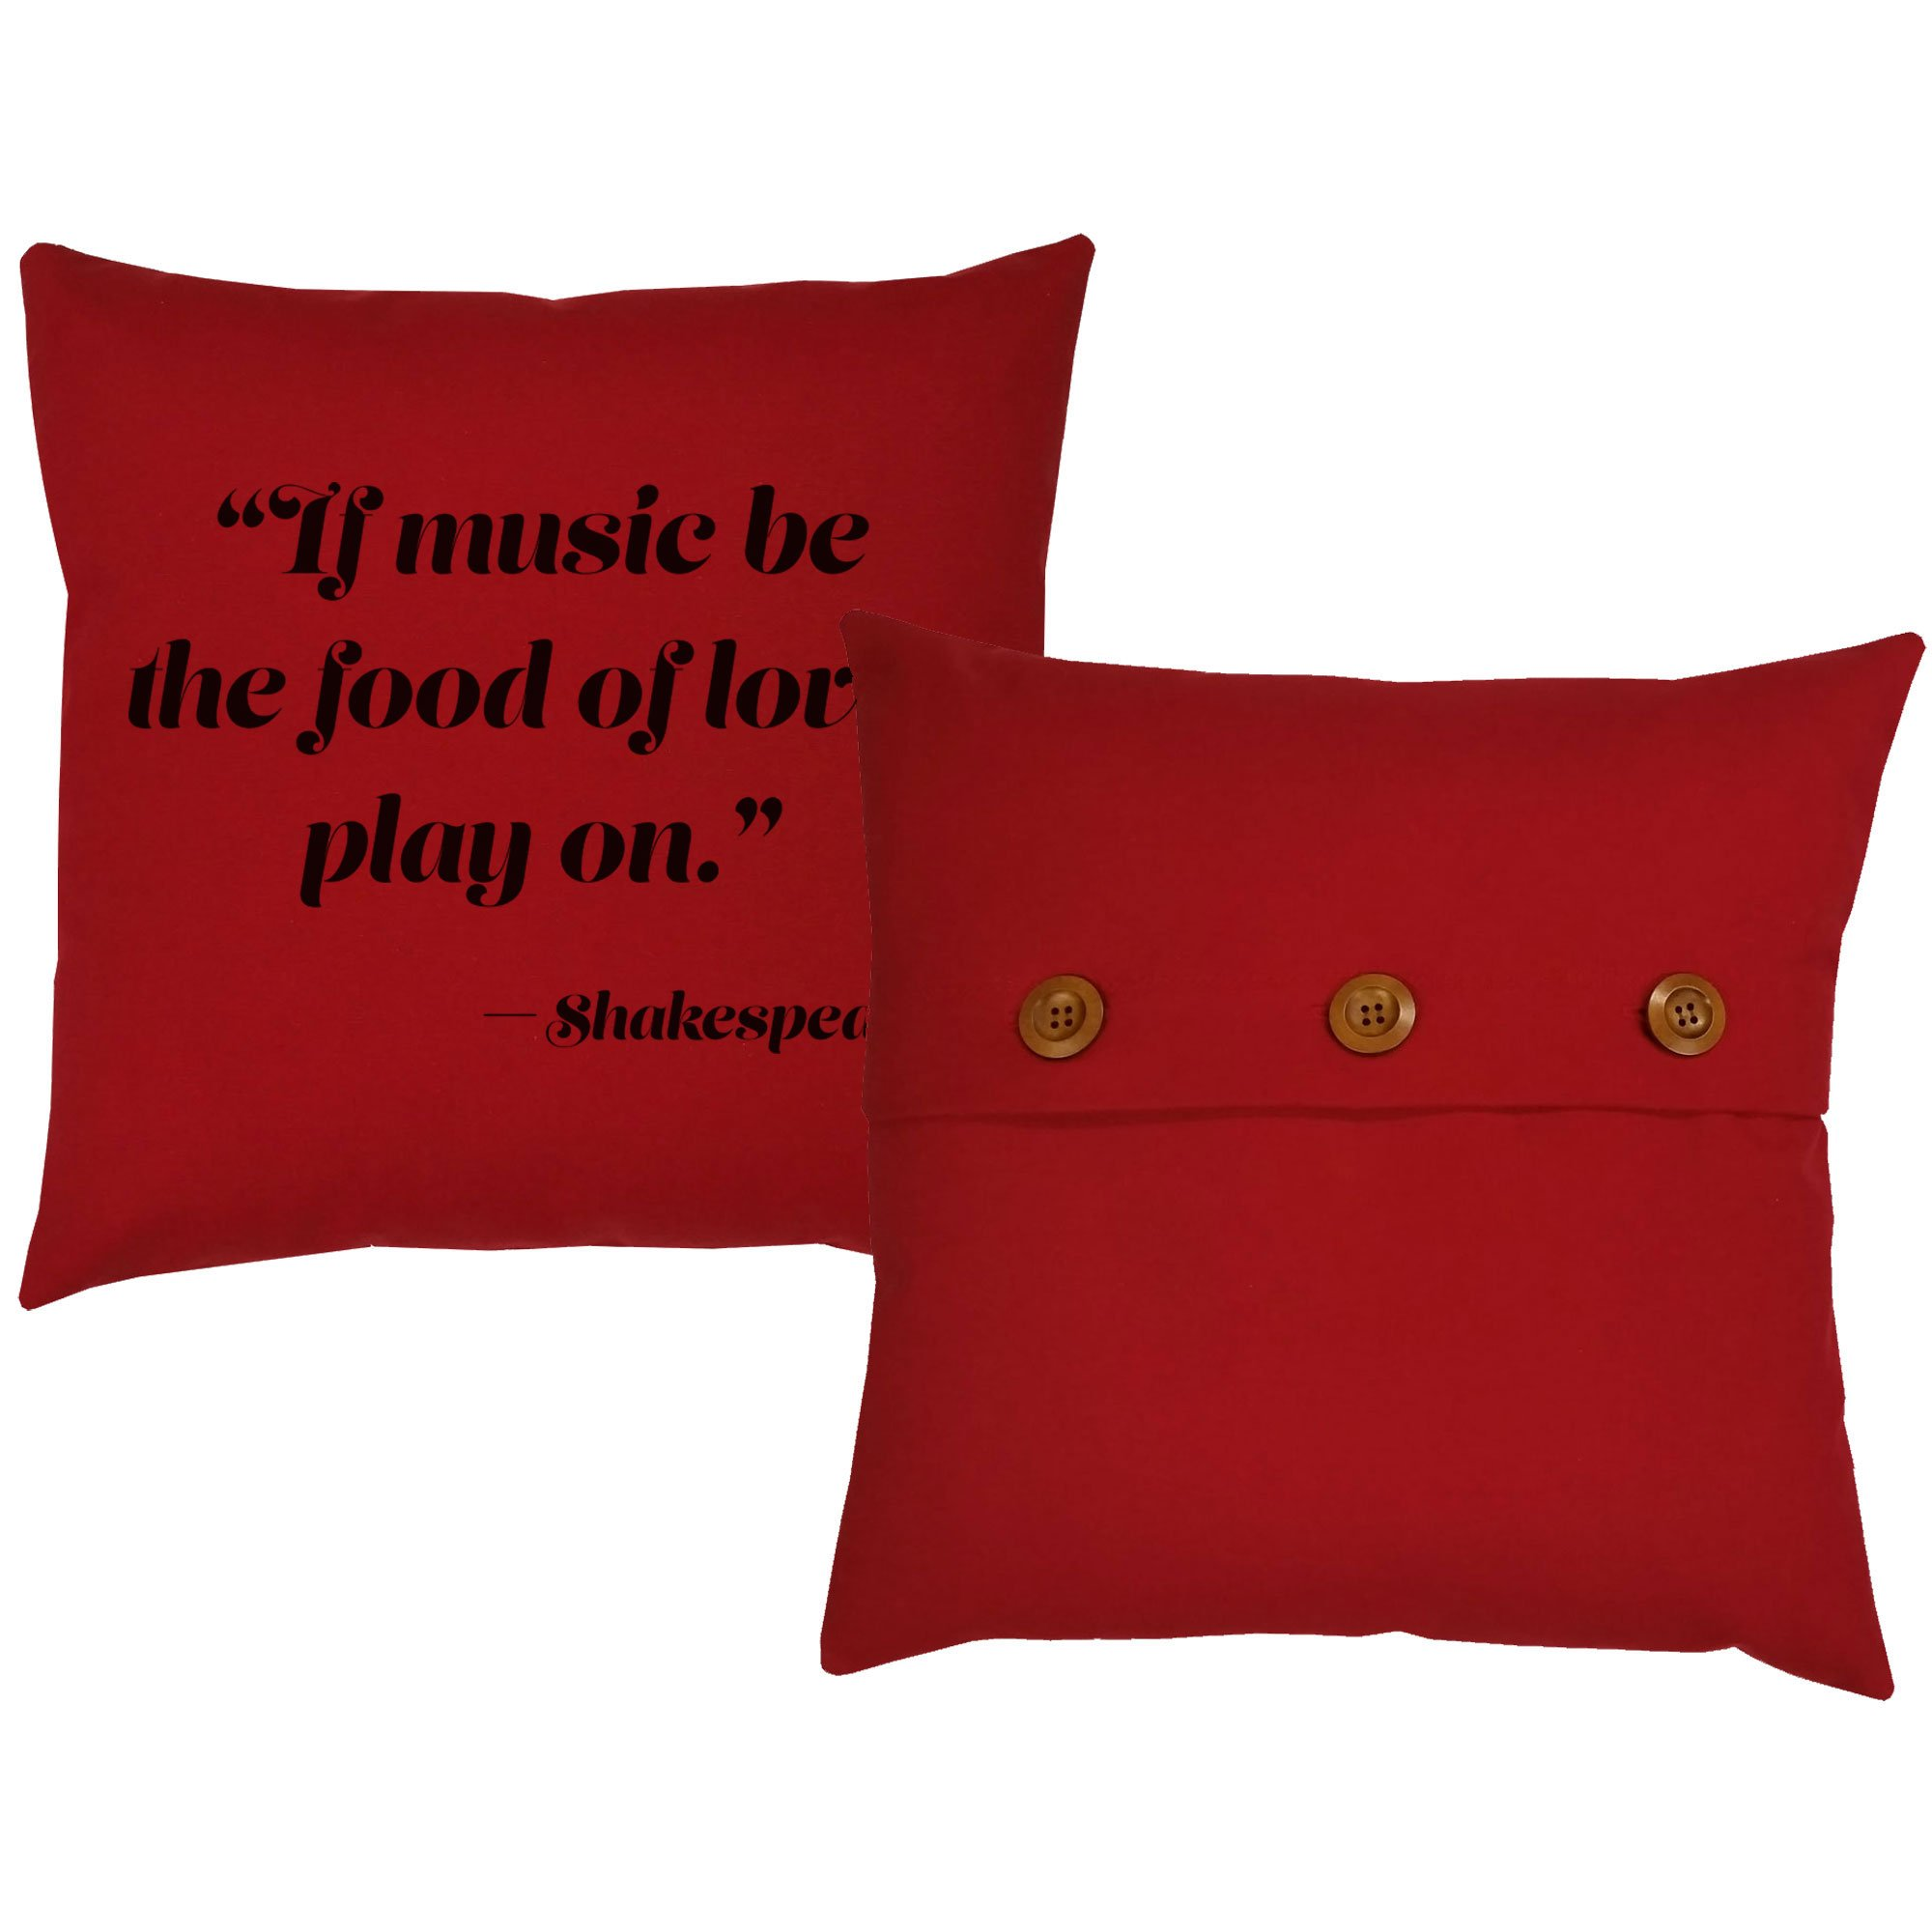 Set of 2 RoomCraft Music is the Food of Love Throw Pillows 20x20 Square Red Cotton Shakespeare Quote Cushions by RoomCraft (Image #3)